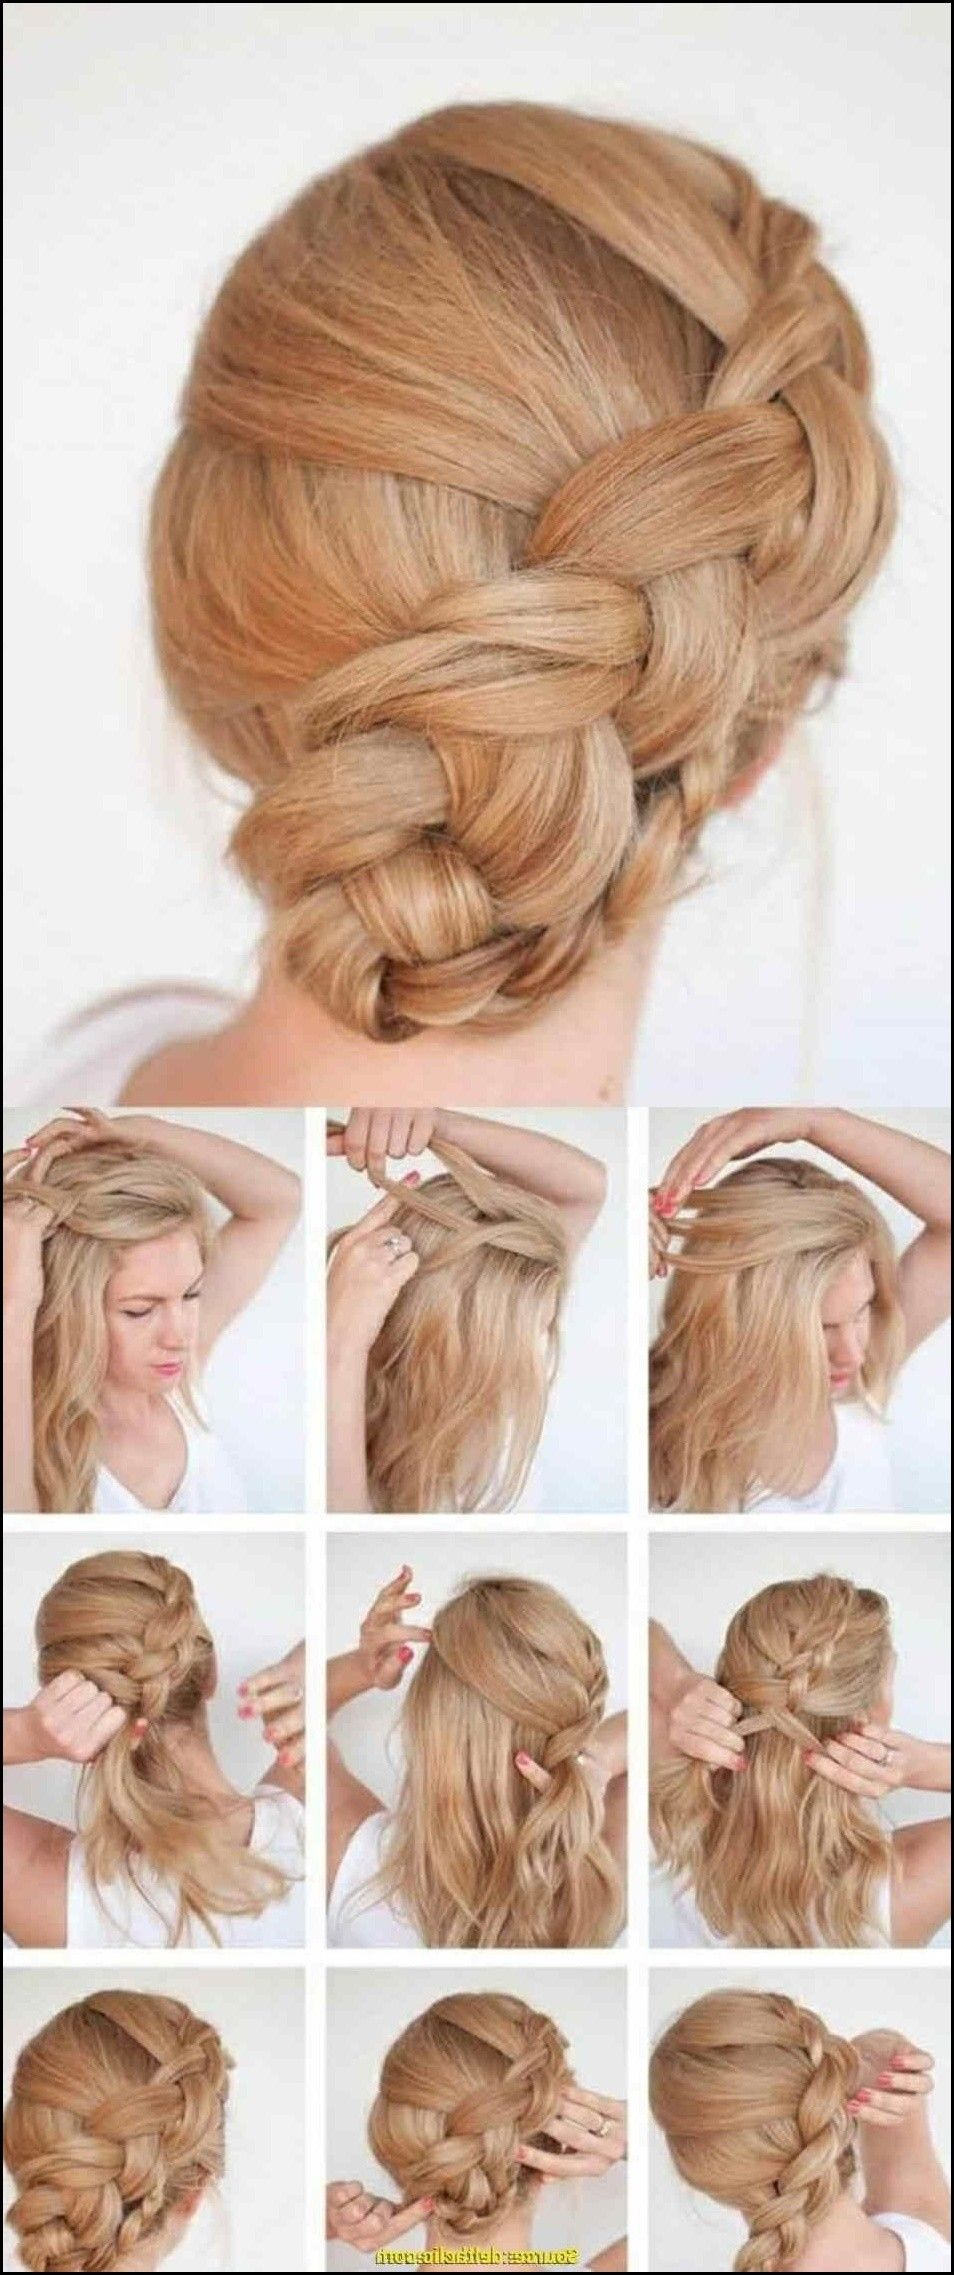 Dirndl Frisuren Lange Haare Frisch Frisur Haare Frisur Zopf Easy Hairstyles For Long Hair Easy Hairstyles Long Hair Trends